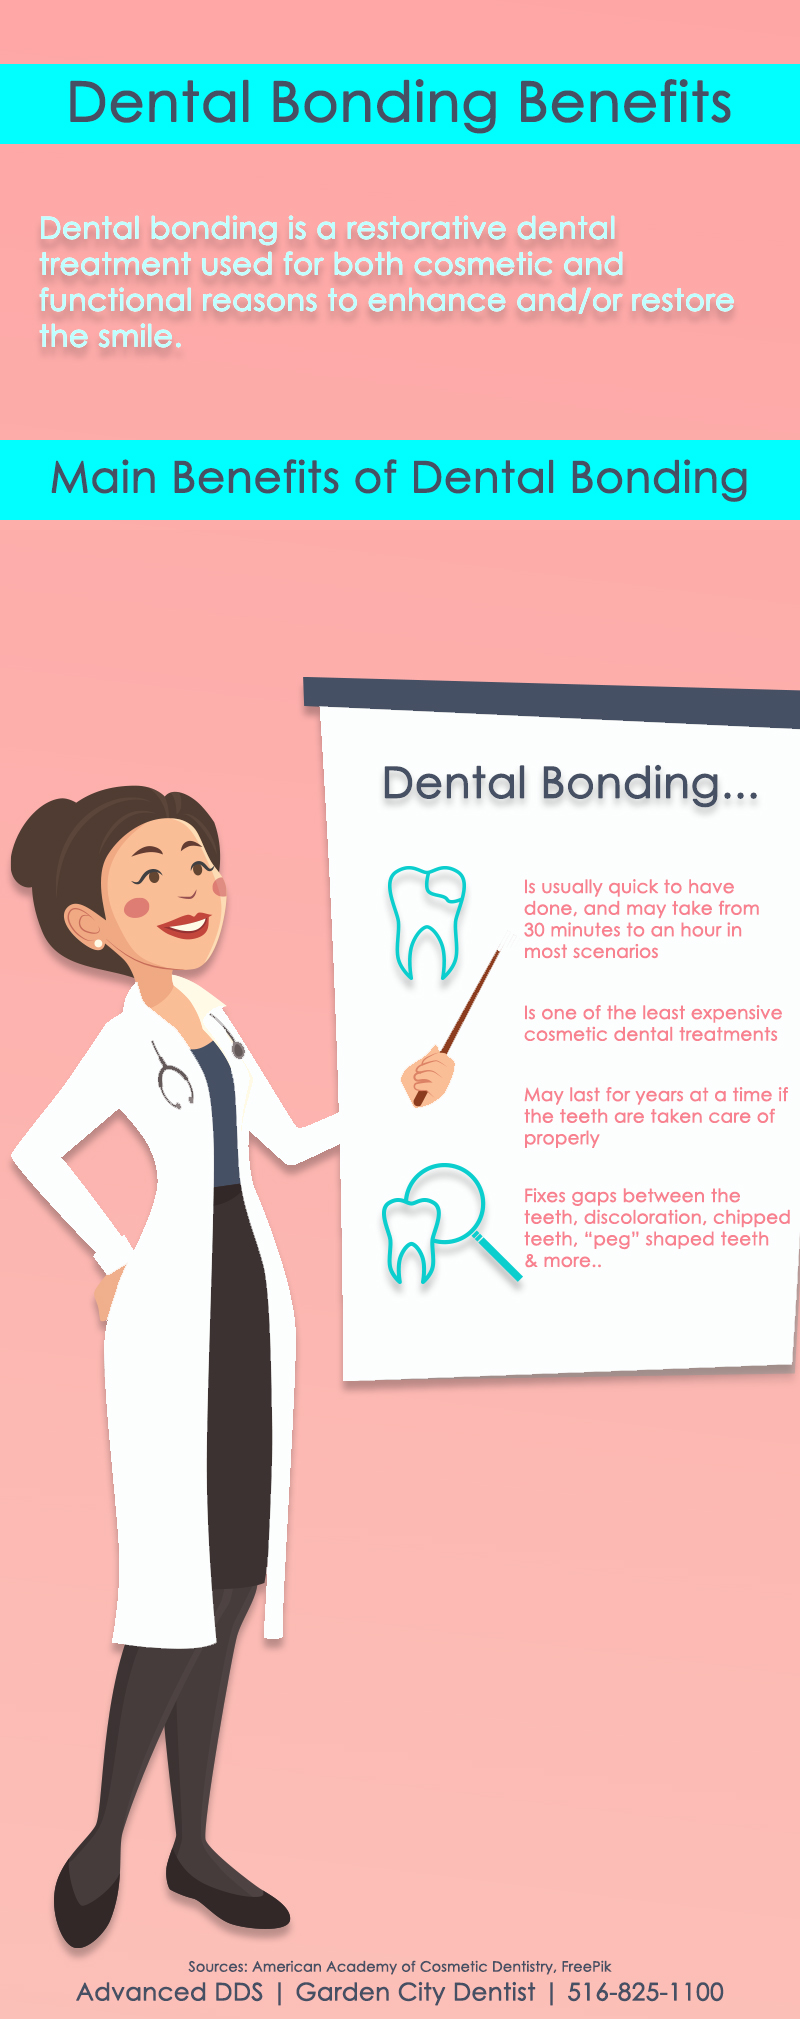 infographic describing the benefits of dental bonding. graphic has a pink background with a bright aqua blue colored text.